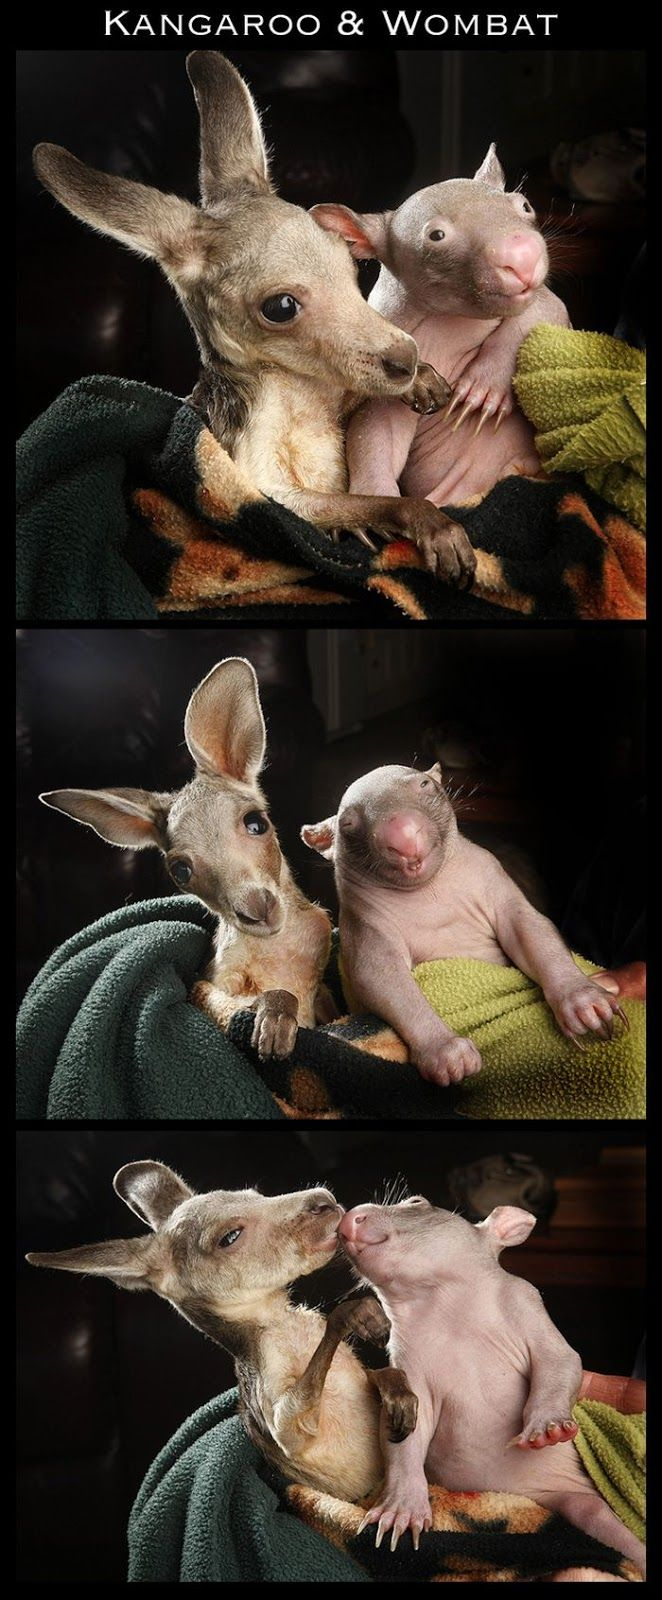 Kangaroo & WombatFriends Love, Funny Pics, Interspecies Friendship, Pets, Odd Animal Friendship, Odd Couples, So Funny, The Zoos, Kangaroos Wombat